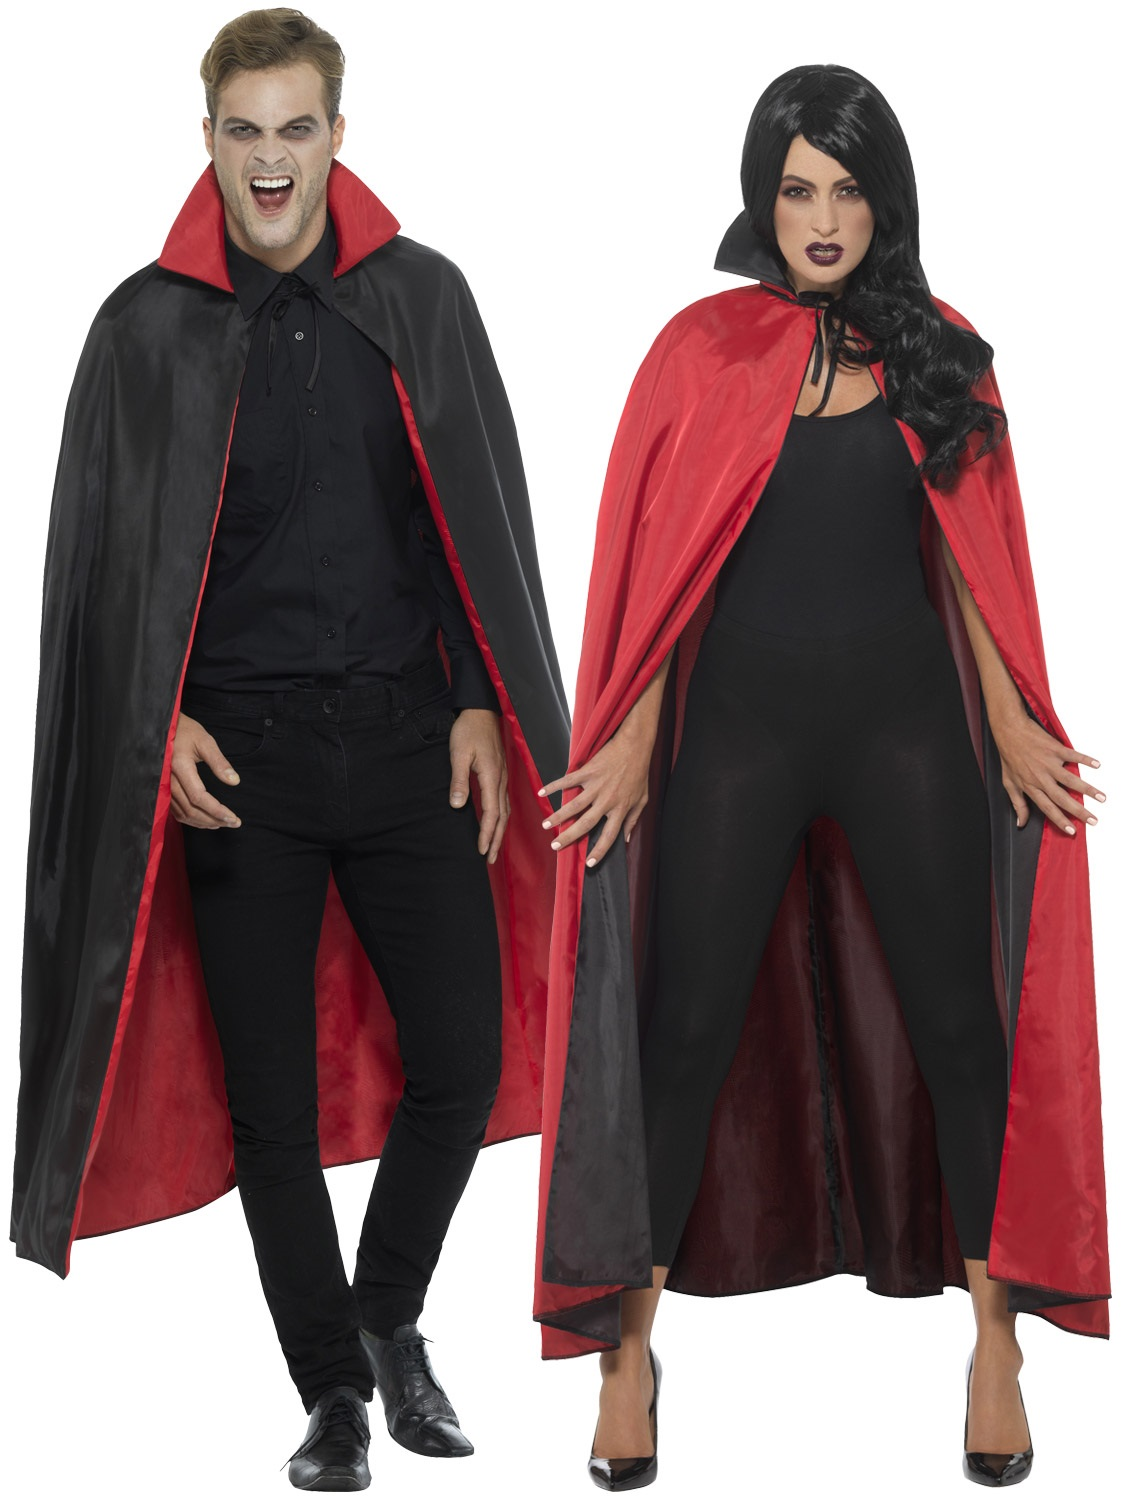 Ladies Witch Cape Red Black Reversible fancy dress costume womens Halloween